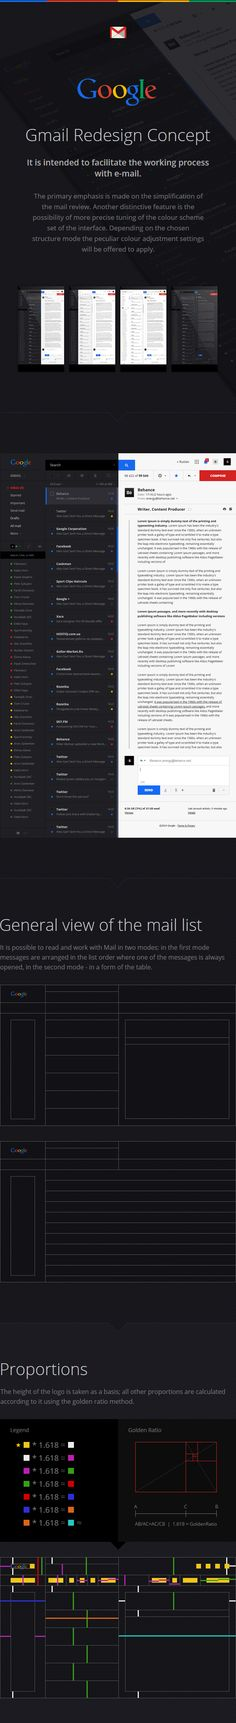 Gmail Redesign Concept by Ruslan Aliev, via Behance